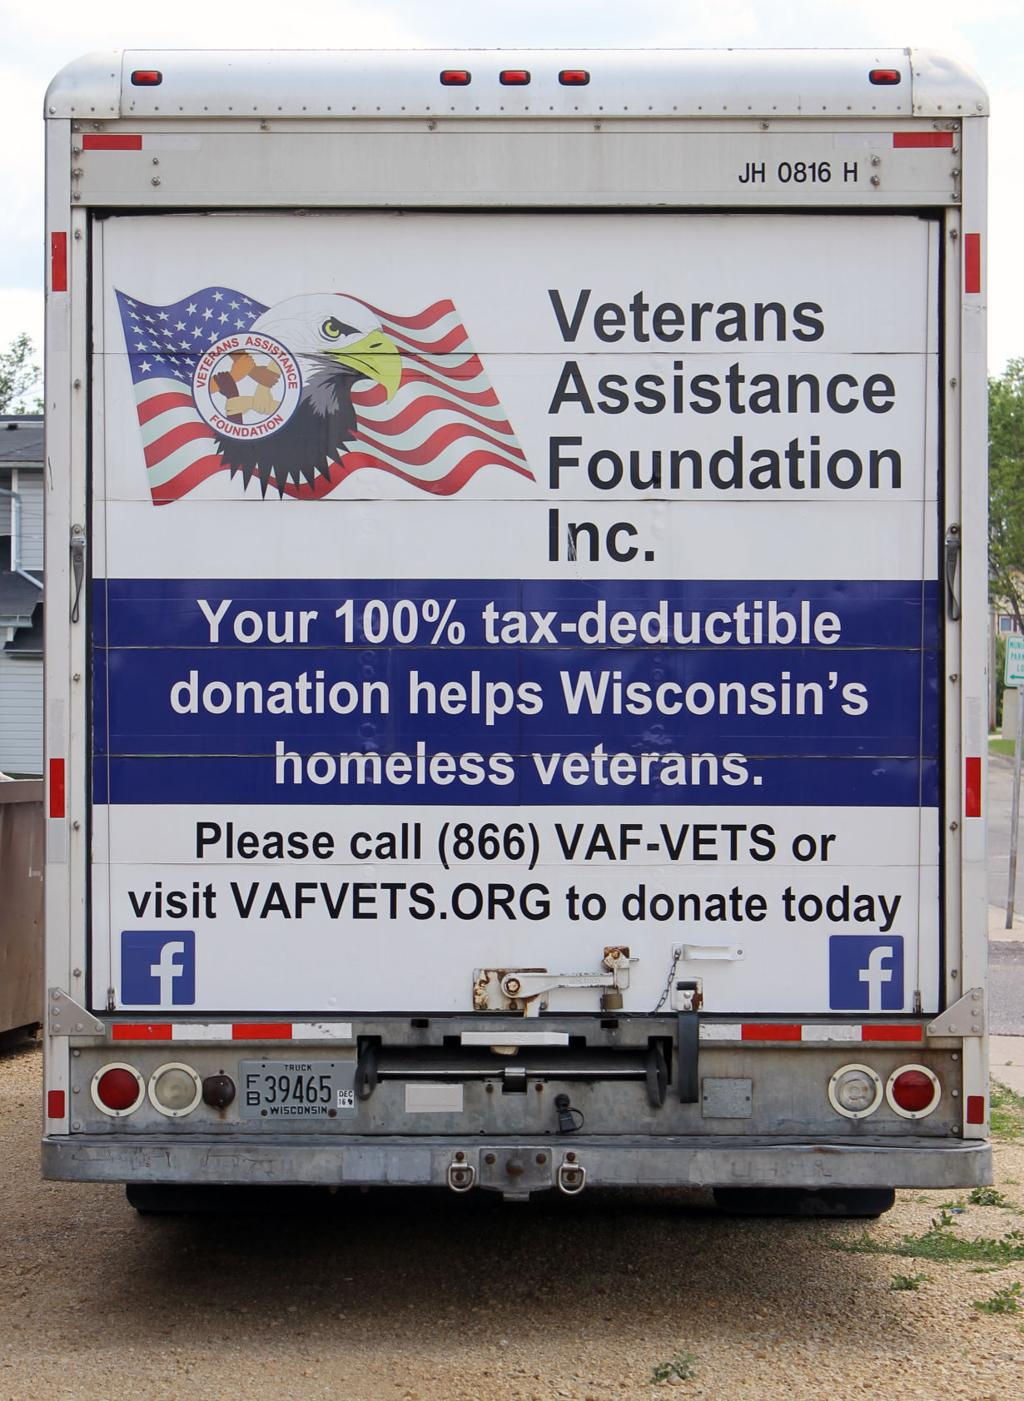 Wisconsin continues partnership with Veterans Assistance